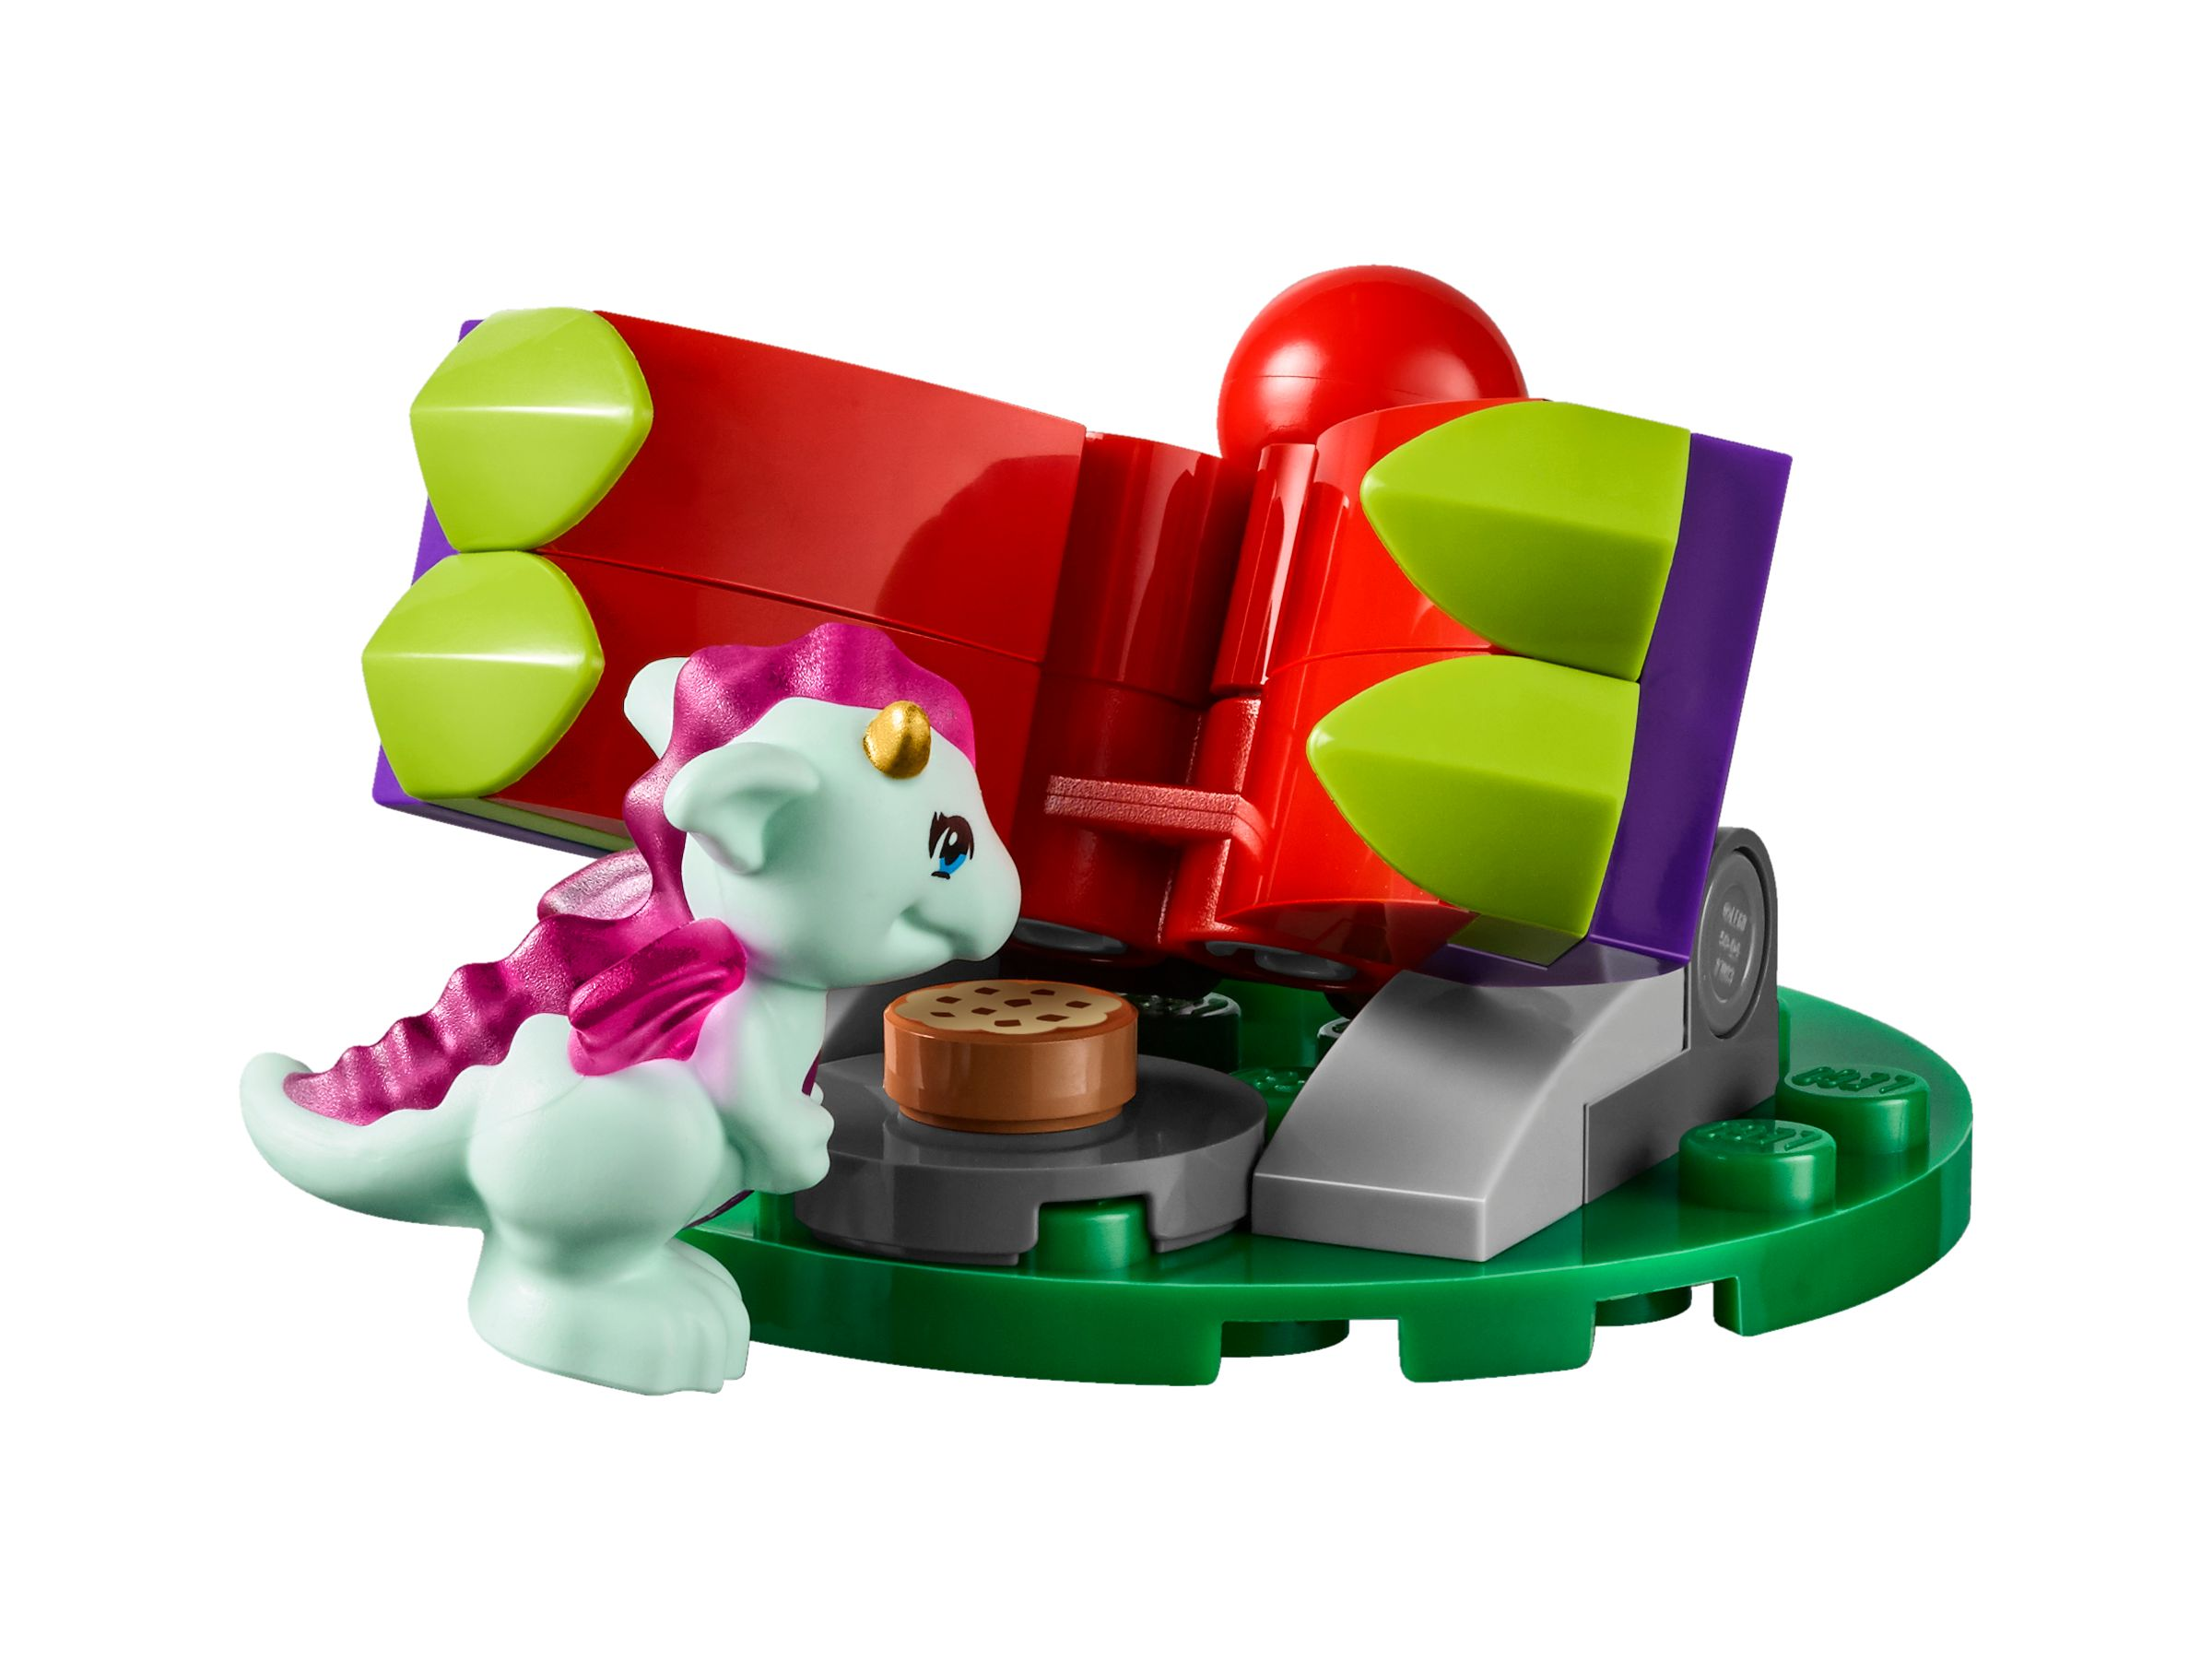 lego elves 41187 rosalyns heilendes versteck ab 41 99. Black Bedroom Furniture Sets. Home Design Ideas